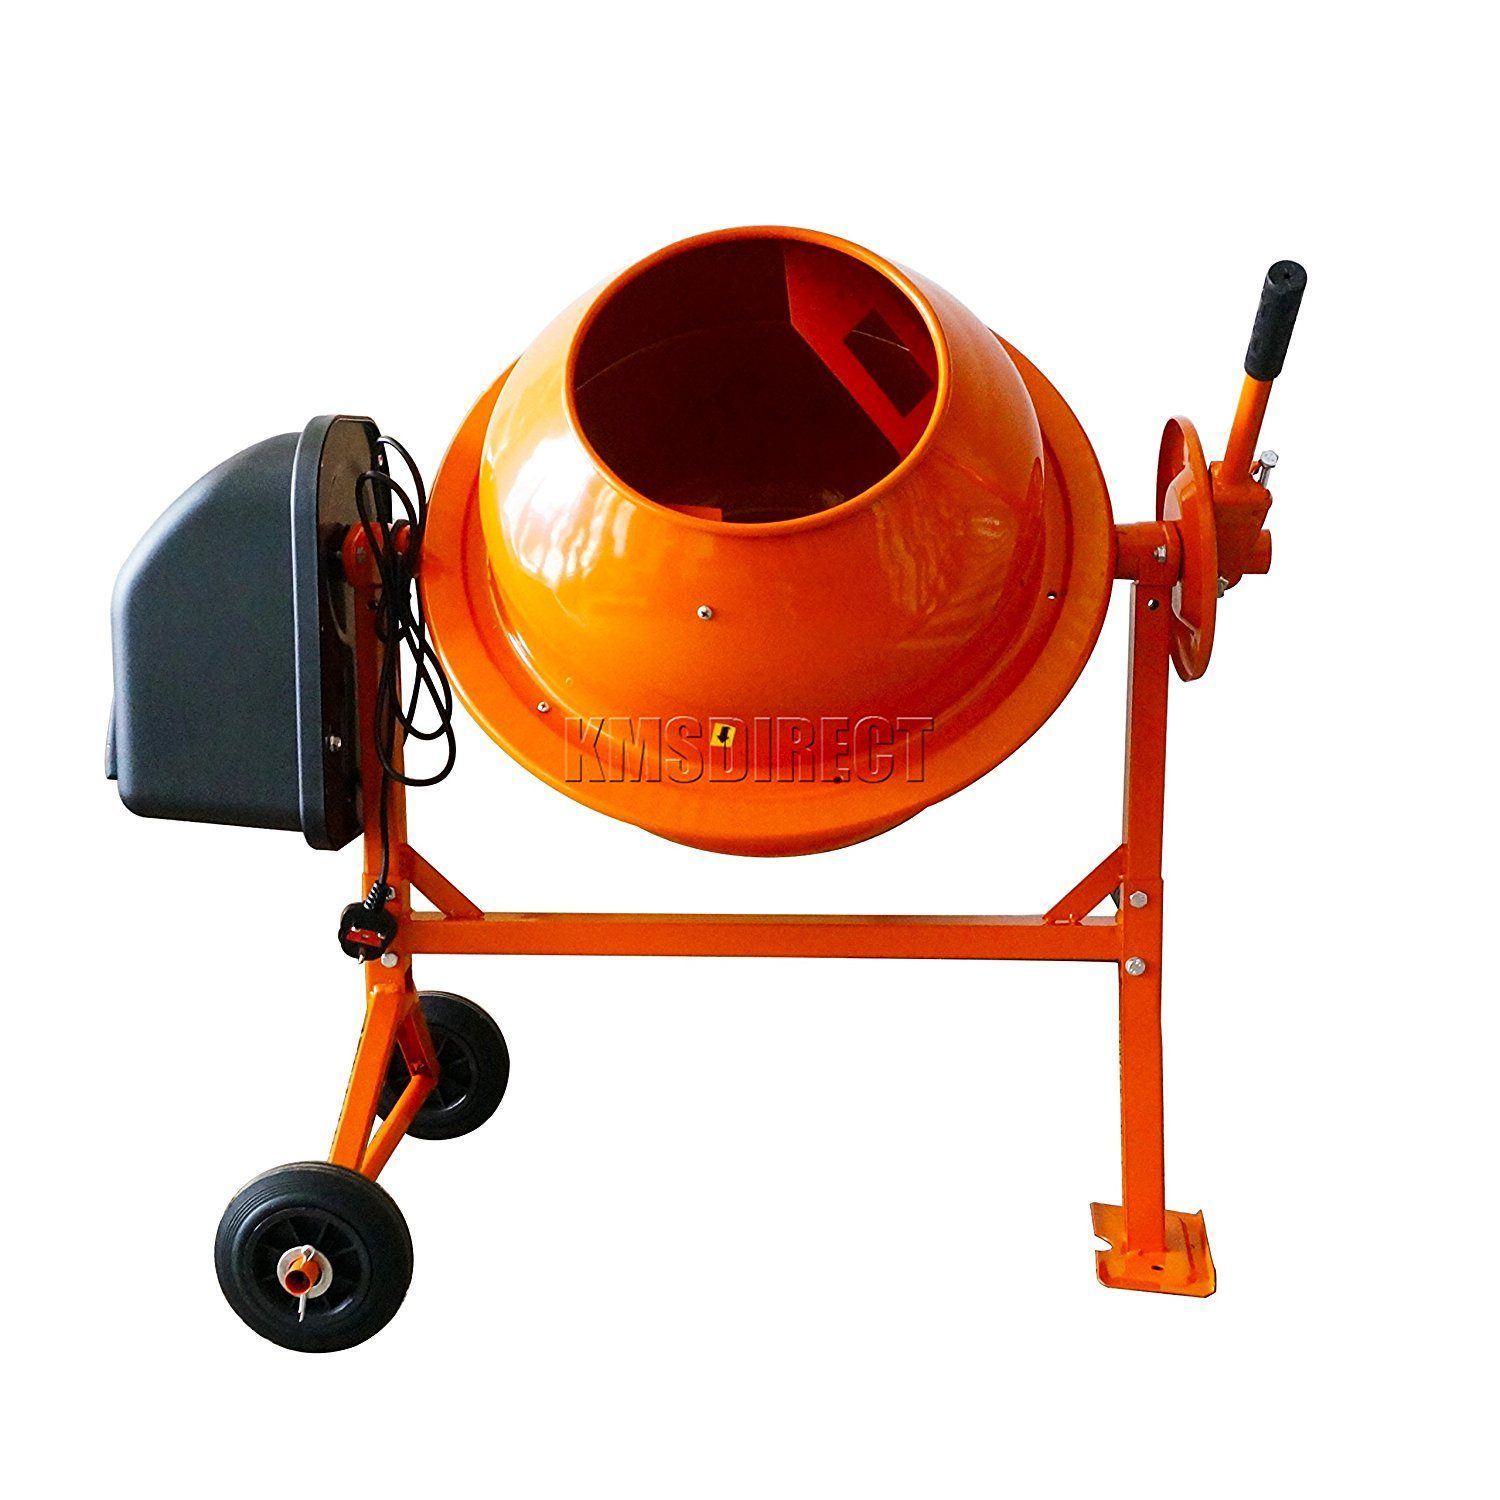 Foxhunter 240v 250w Cement Mixer front view